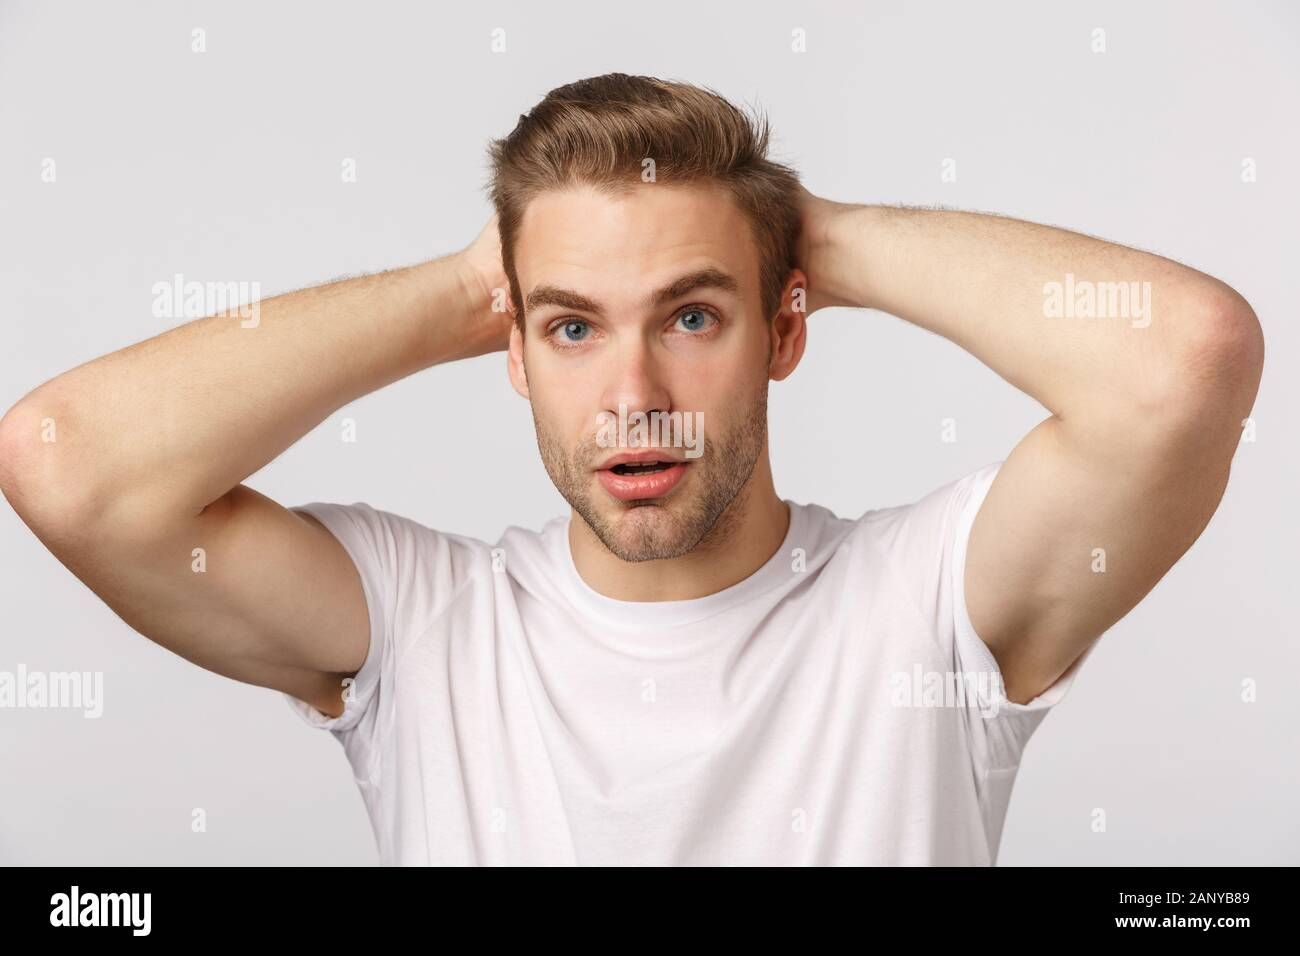 Concerned And Troubled Nervous Young Handsome Blond Guy Feel Anxious Before Important Interview Or Casting Hold Hands Behind Head Look Indecisive Stock Photo Alamy